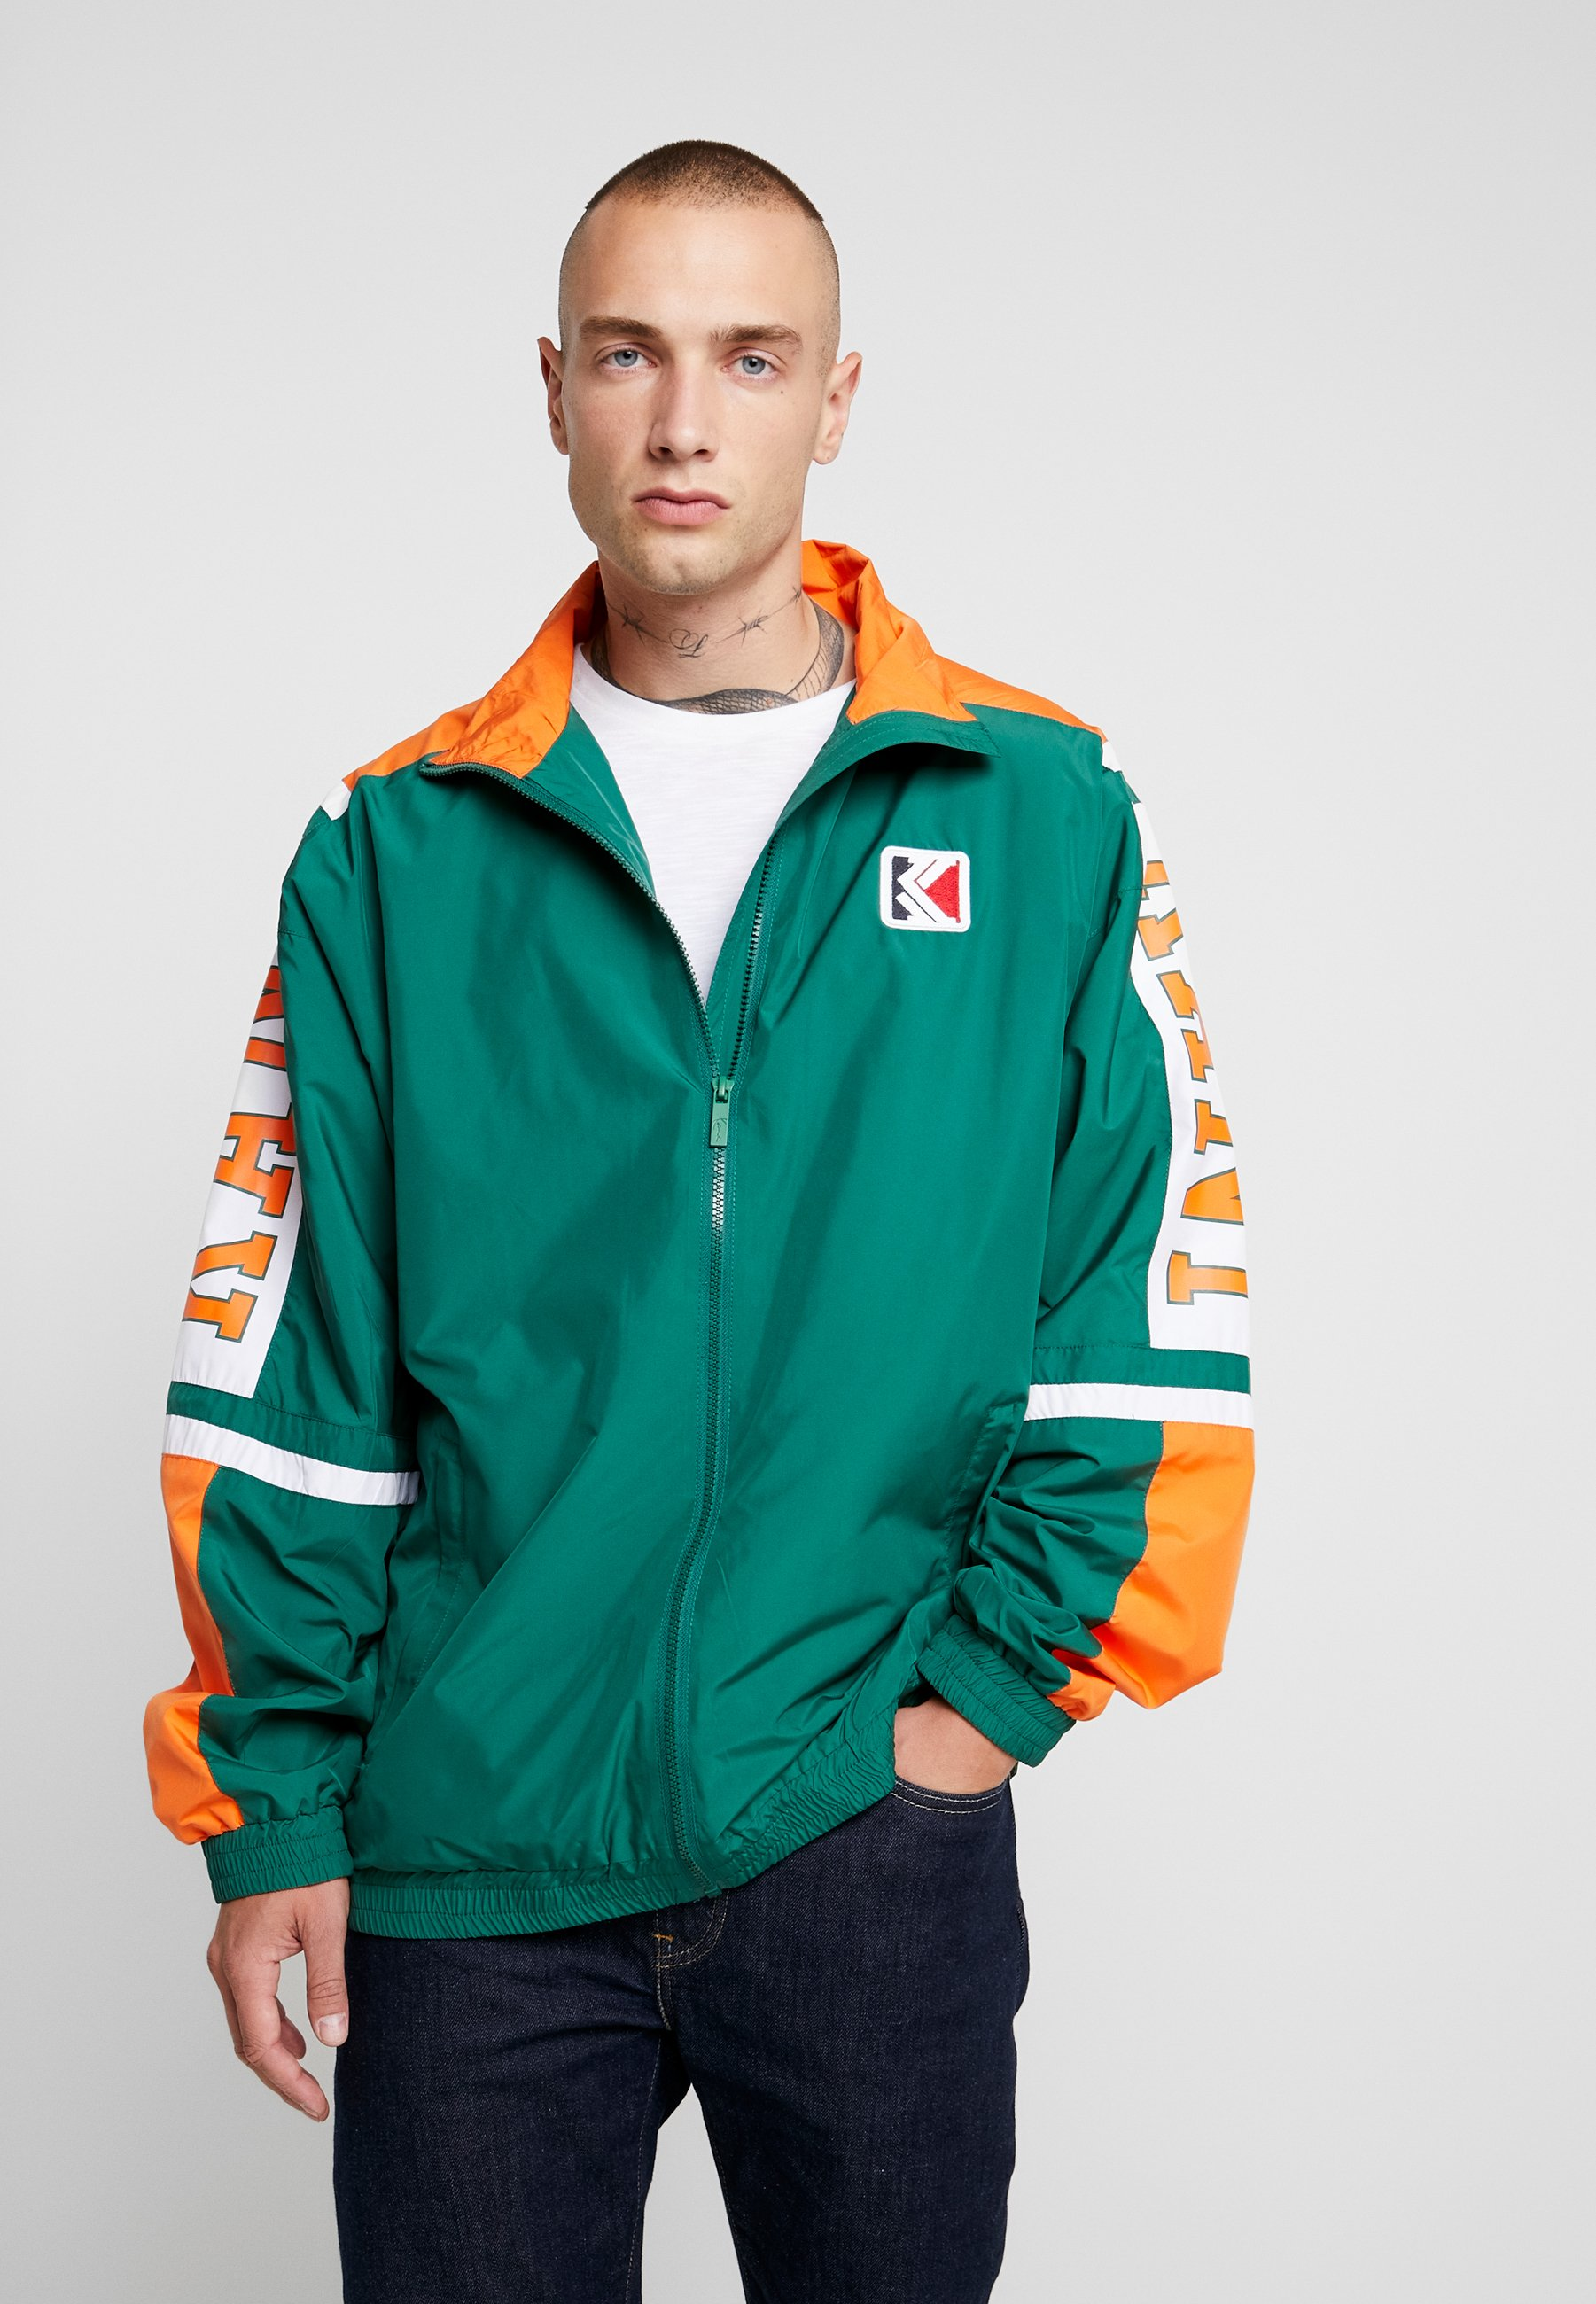 Kani Green Karl orange TrackjacketVeste white College De Survêtement nkwX80OP